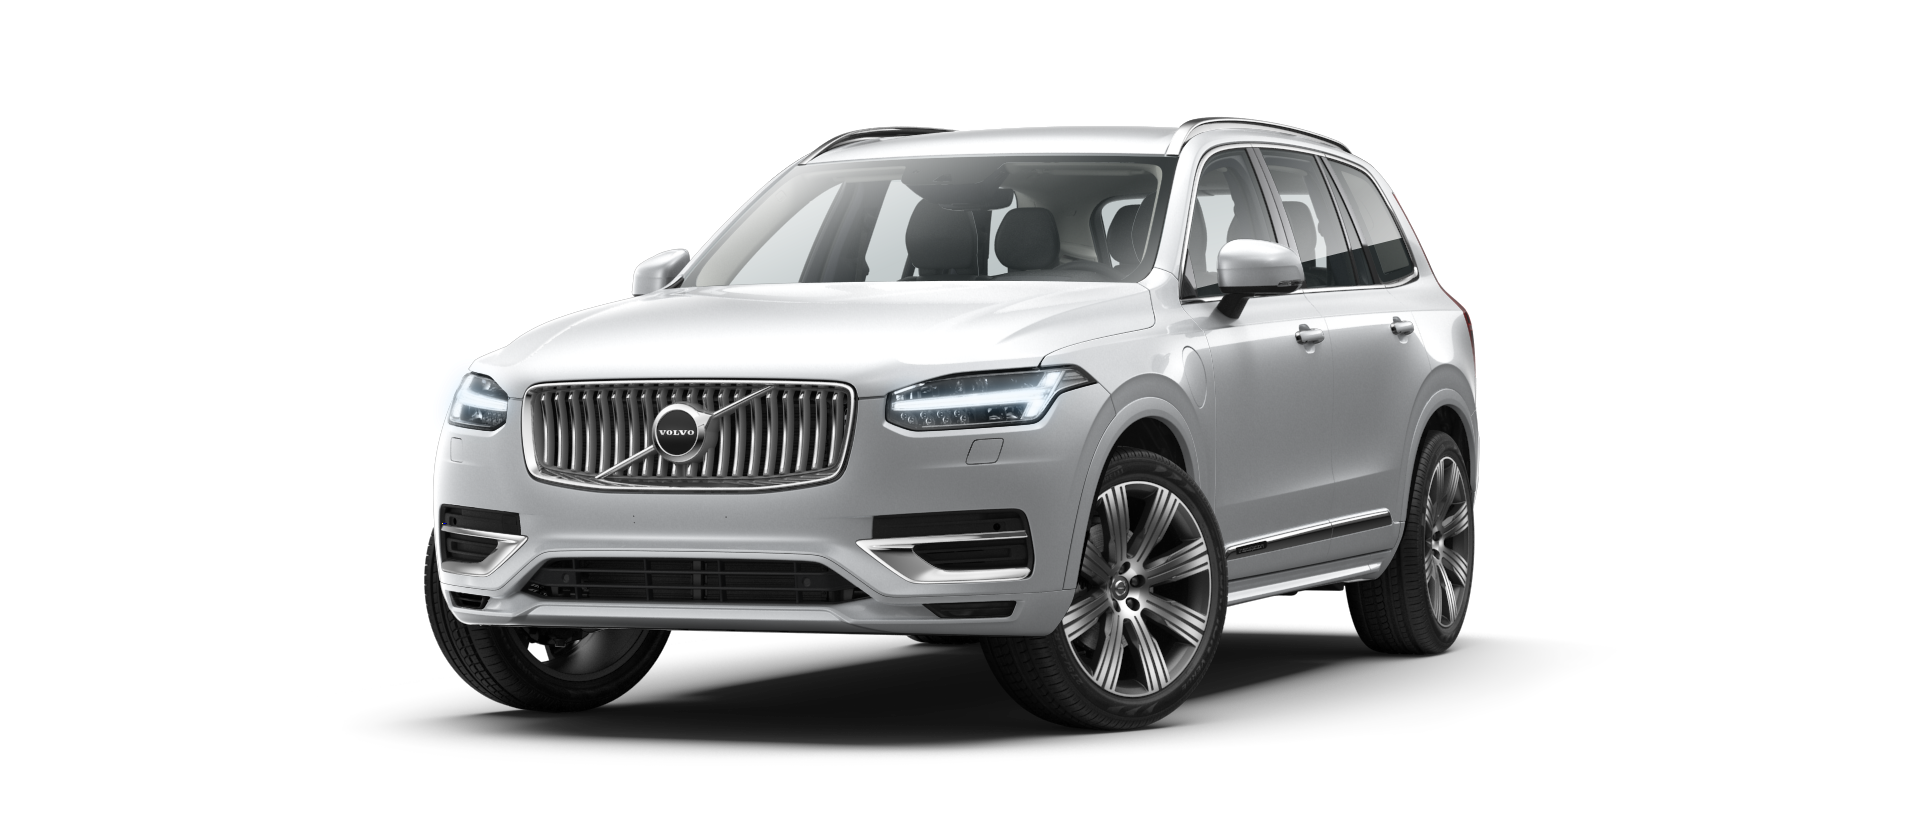 front side view of XC90 mild hybrid